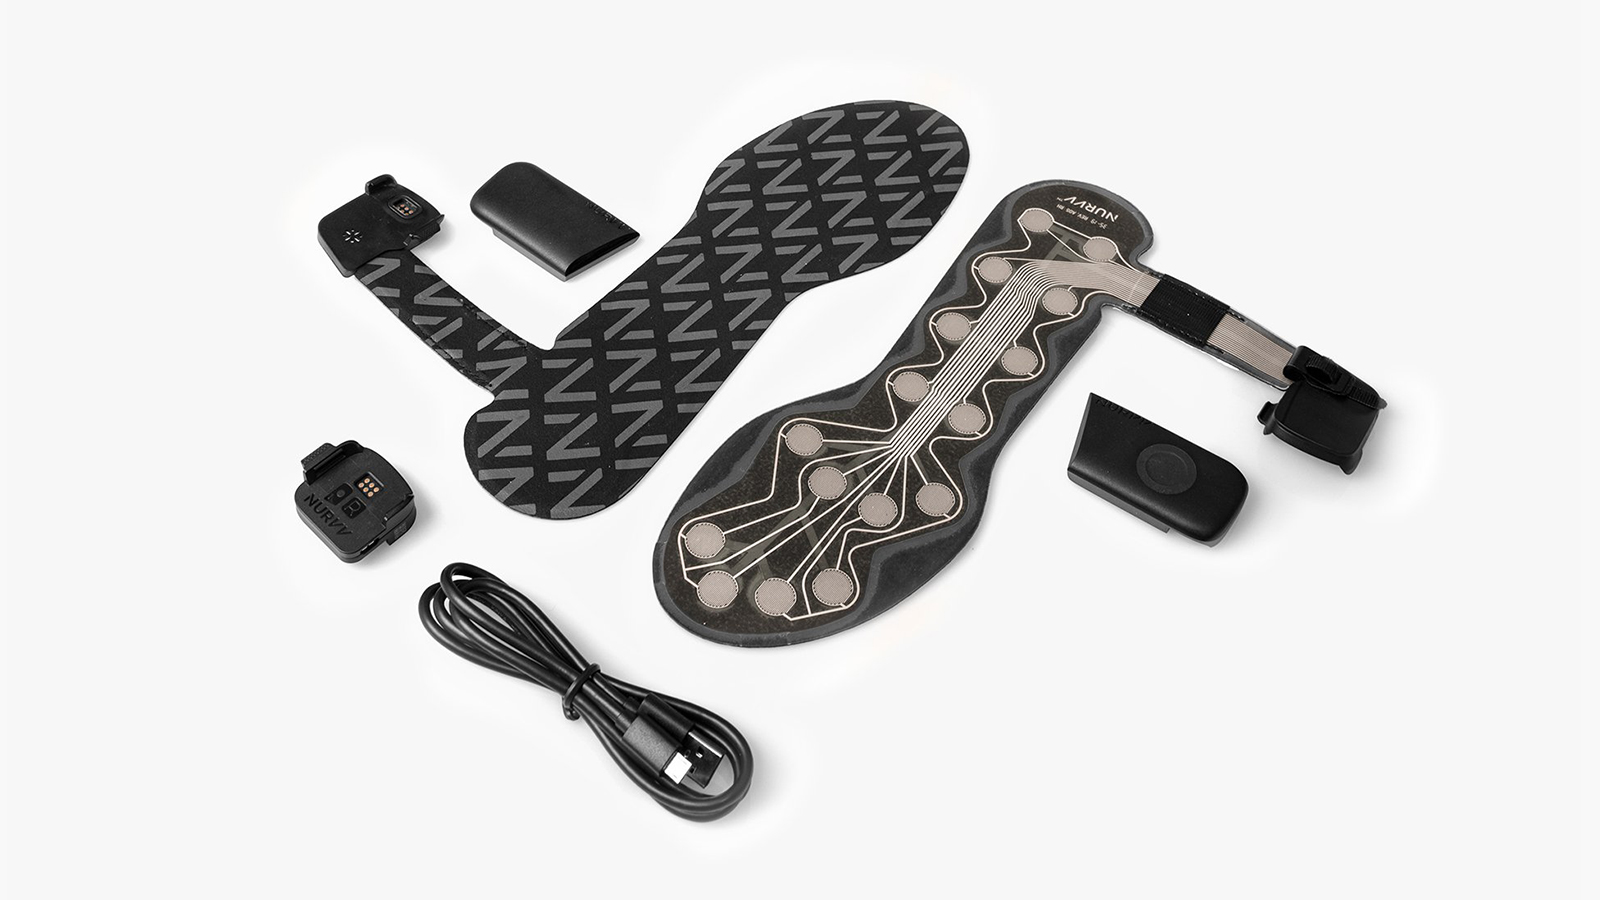 NURVV Smart Insoles and Trackers